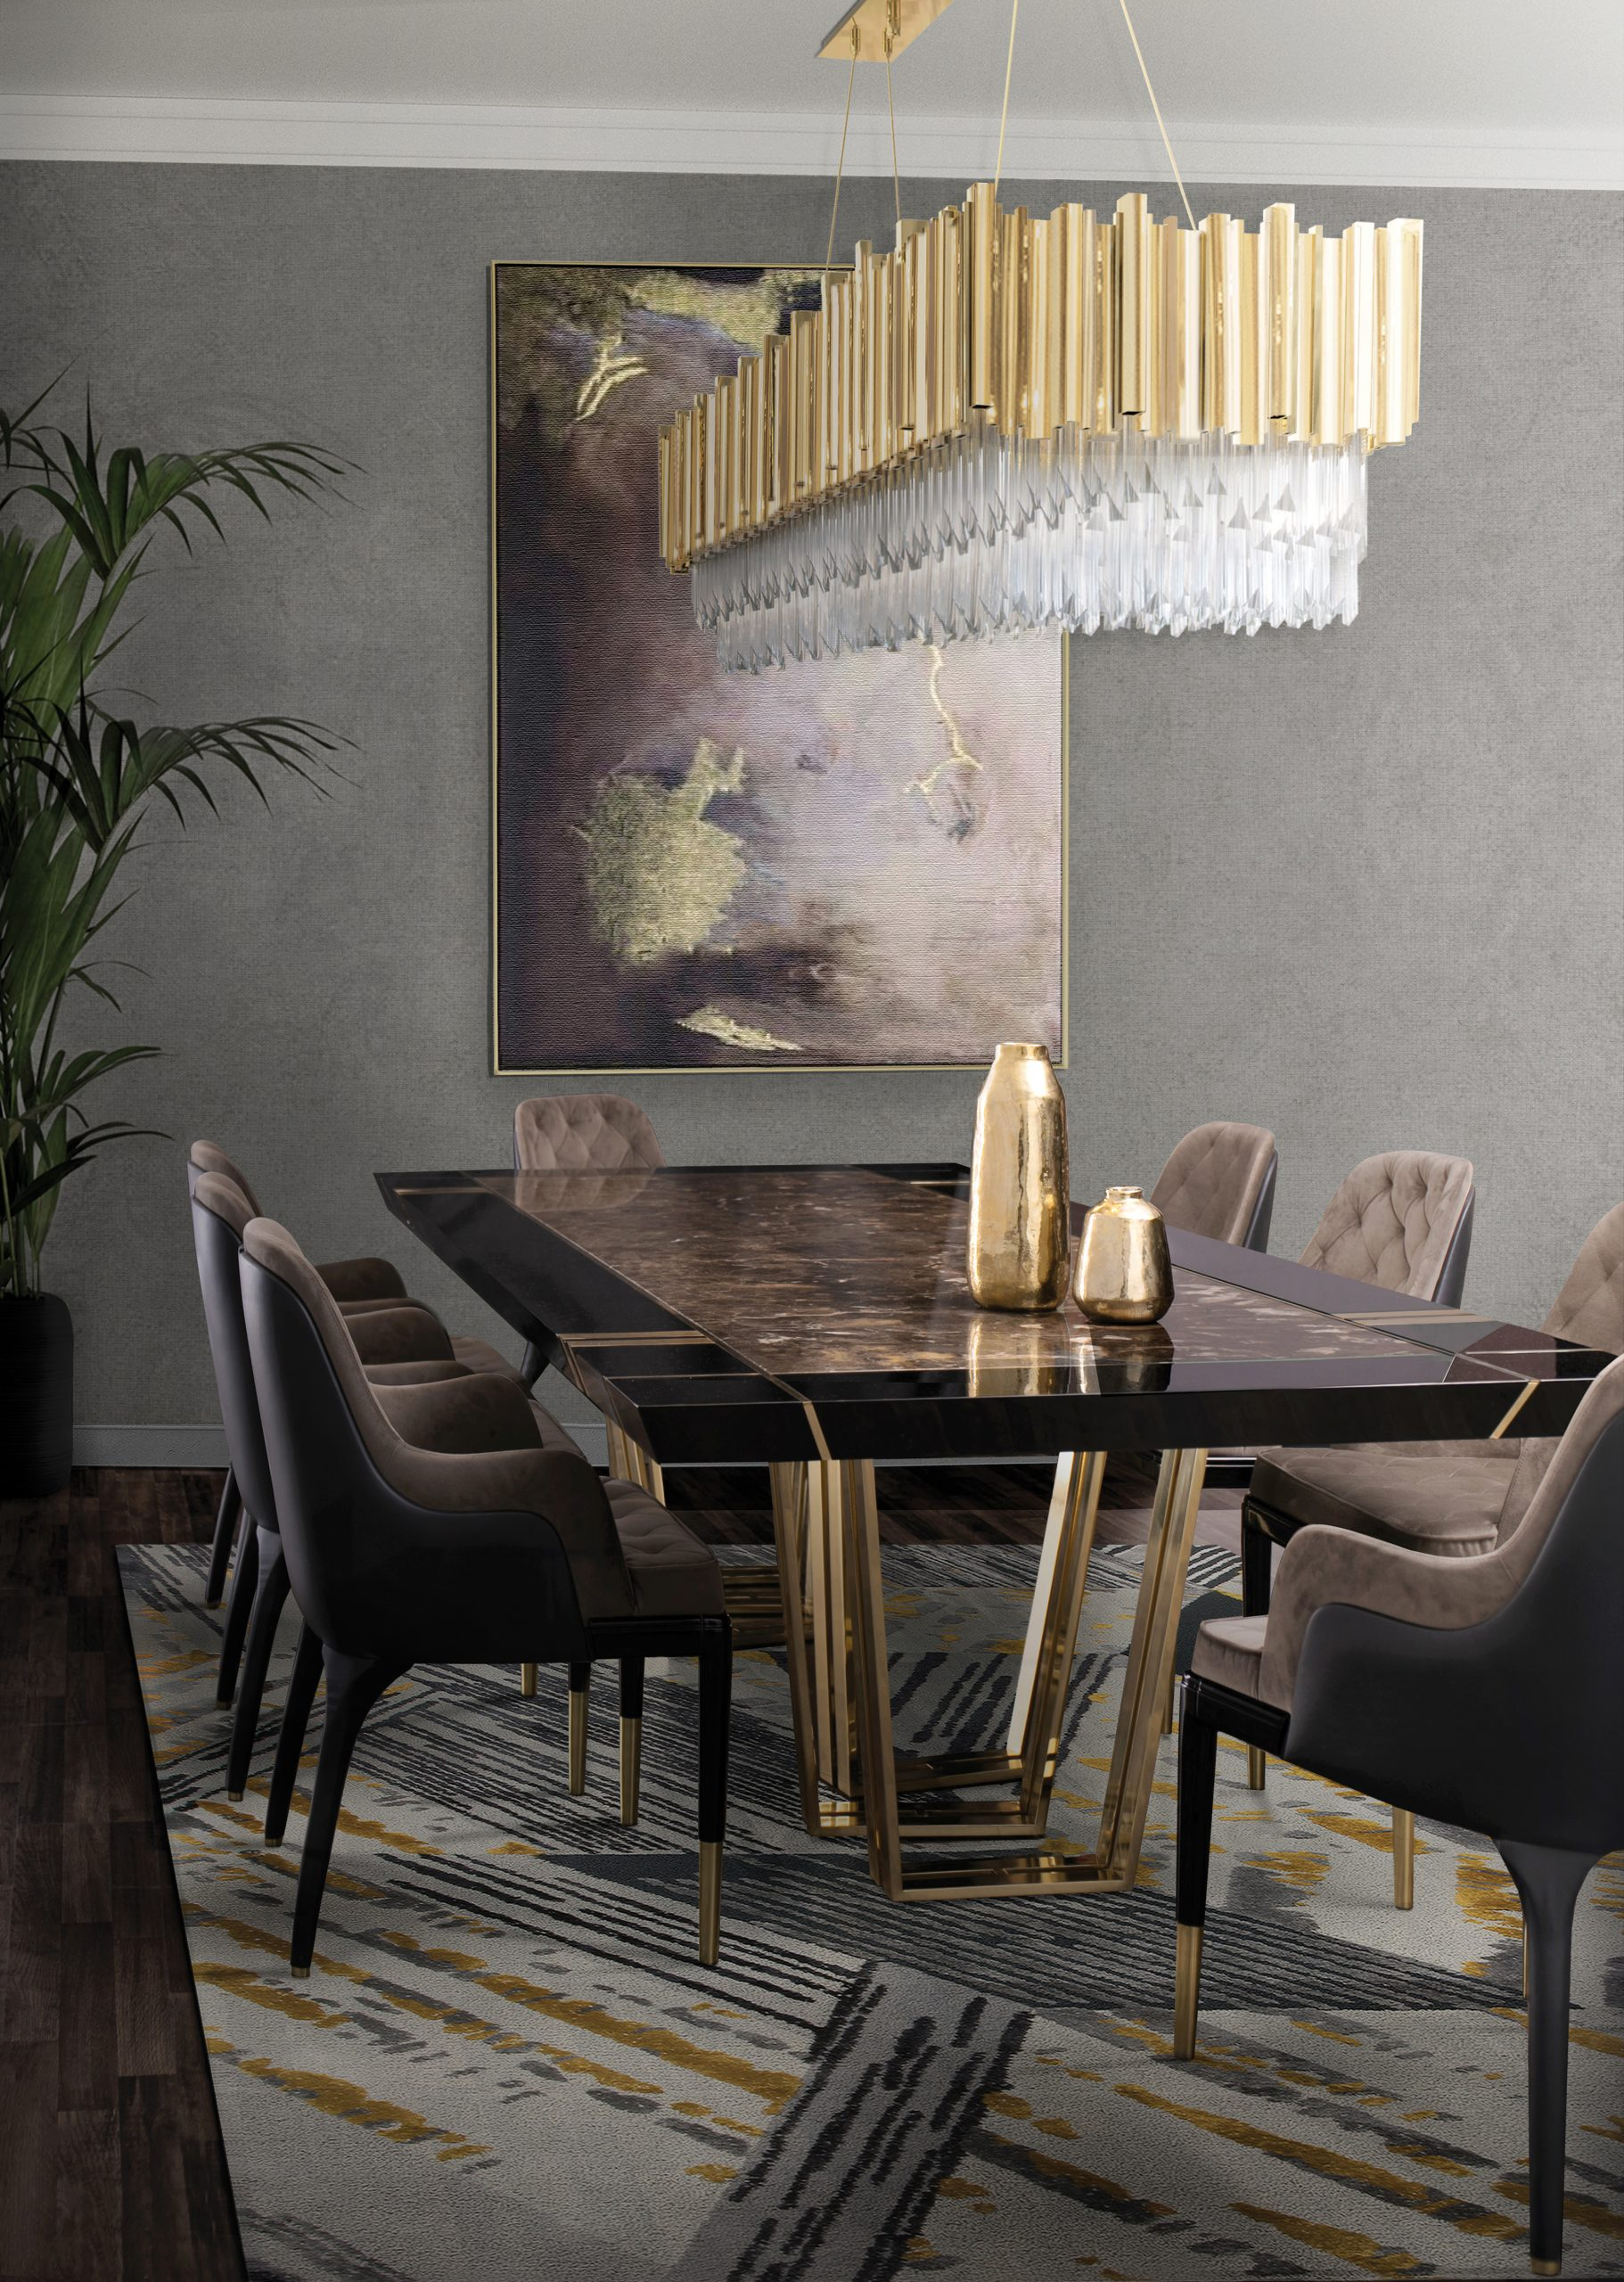 Dining Room Design Ideas to Host The Perfect Meal elegant dining room ideas Elegant Dining Room Ideas You Have To Use this Fall empire square snooker suspension 02 scaled elegant dining room ideas Elegant Dining Room Ideas You Have To Use this Fall empire square snooker suspension 02 scaled